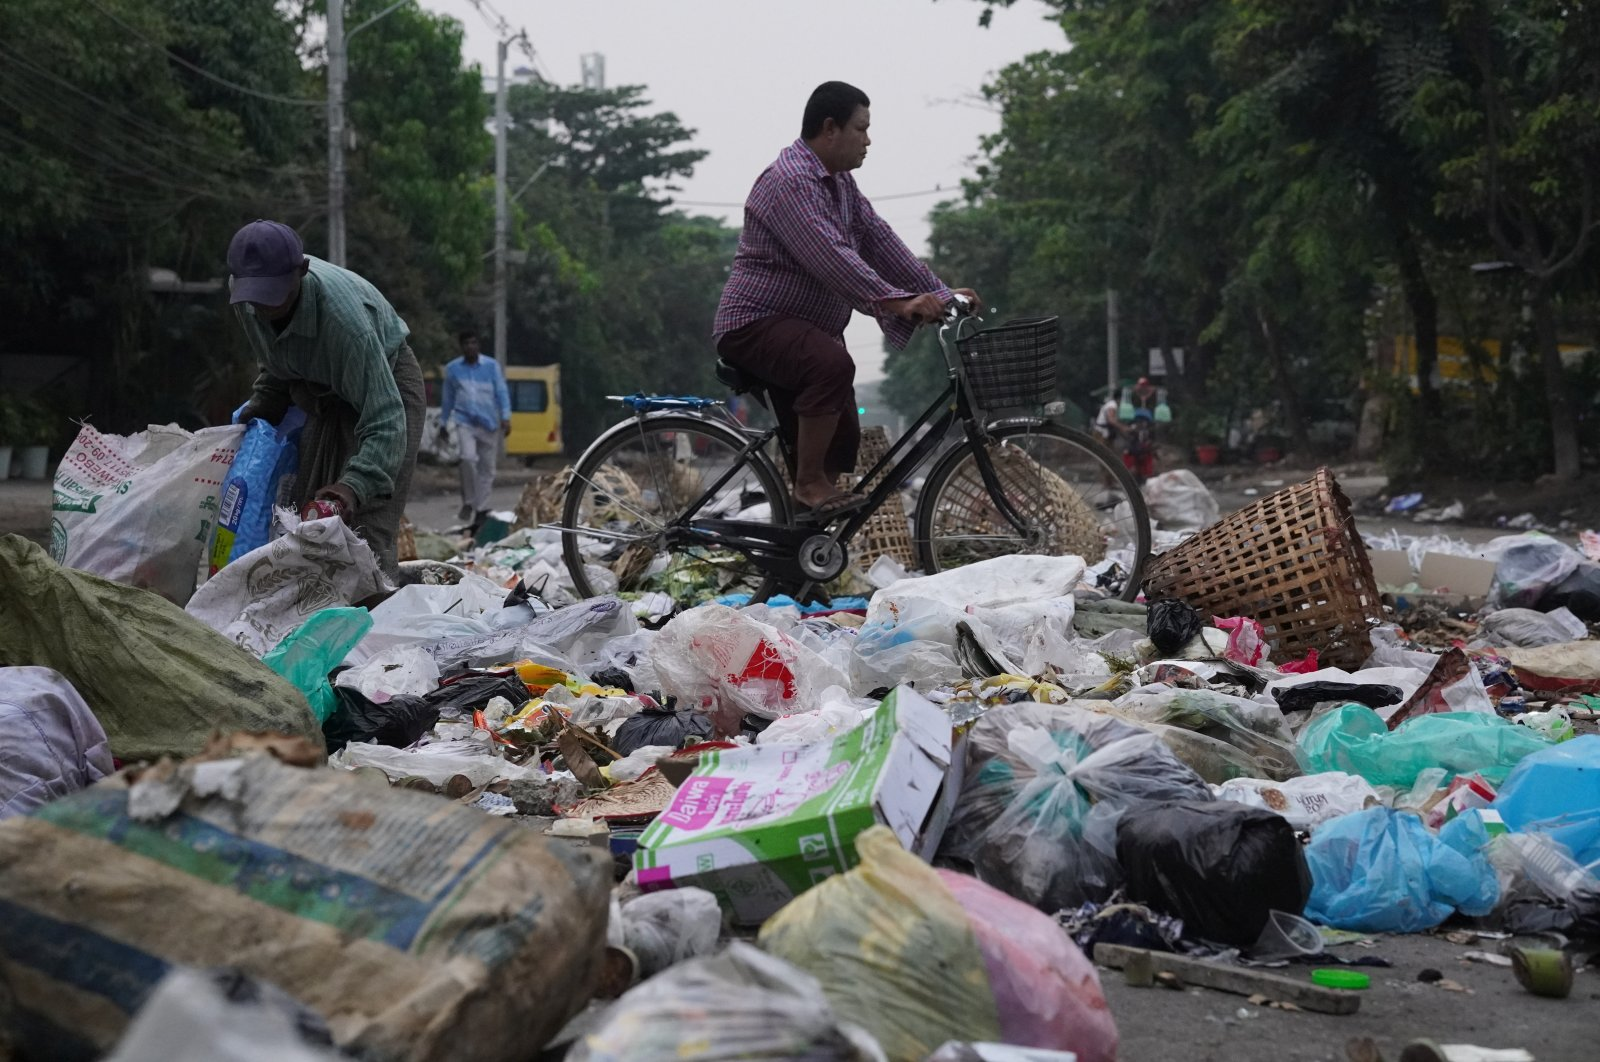 Residents use trash to block streets as a form of protest in Thaketa township, Yangon, Myanmar, in this image obtained by Reuters on March 30, 2021. (Reuters Photo)